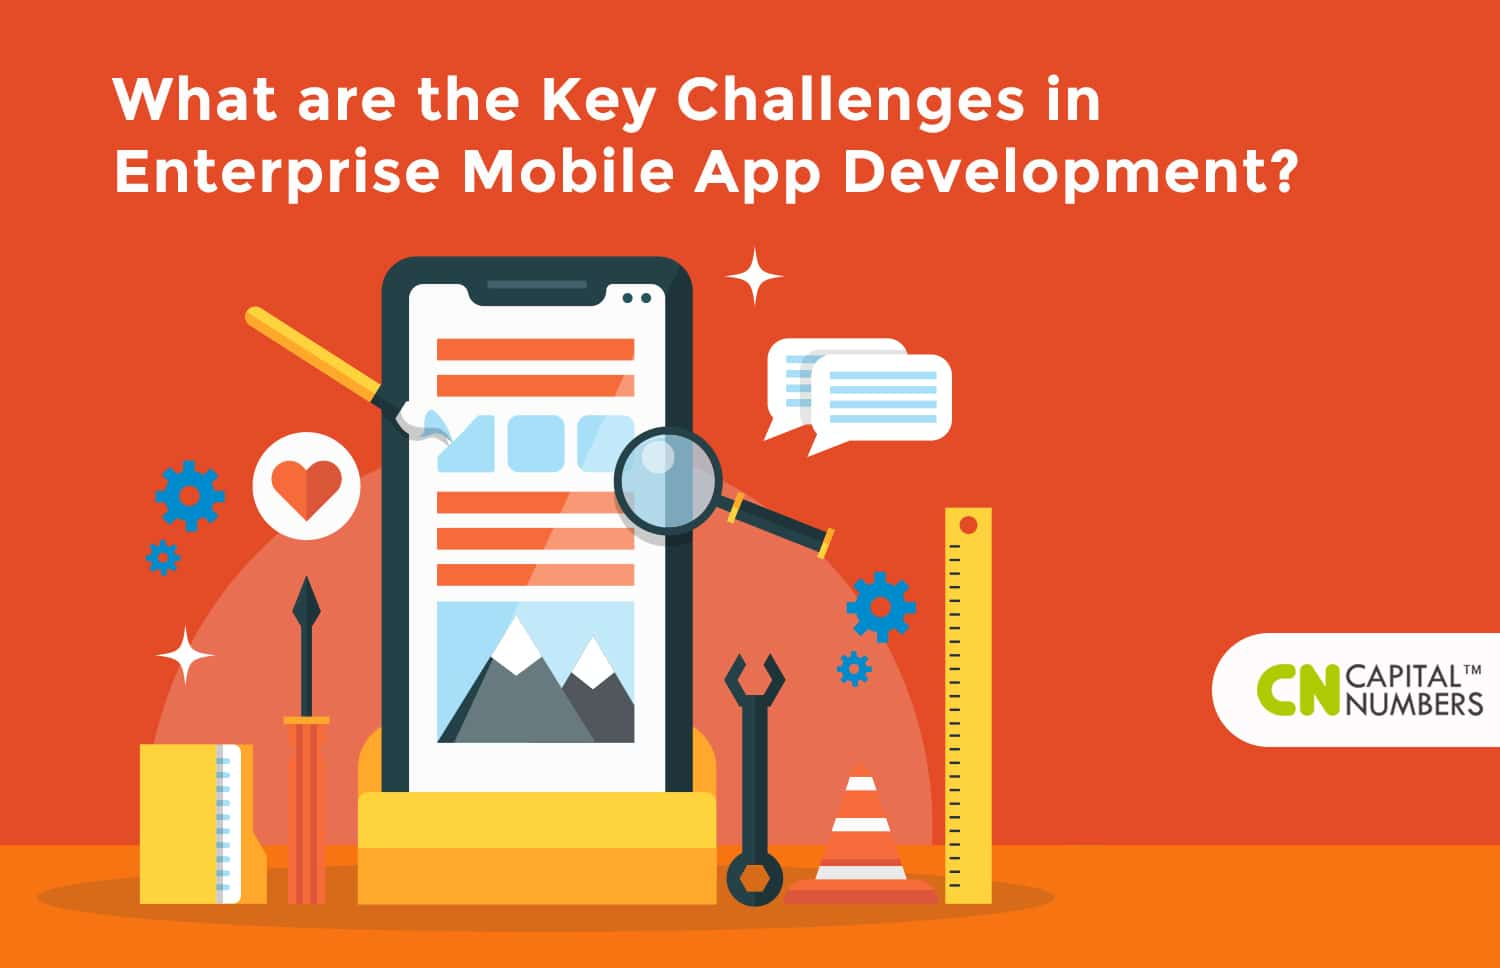 Key Challenges in Enterprise Mobile App Development